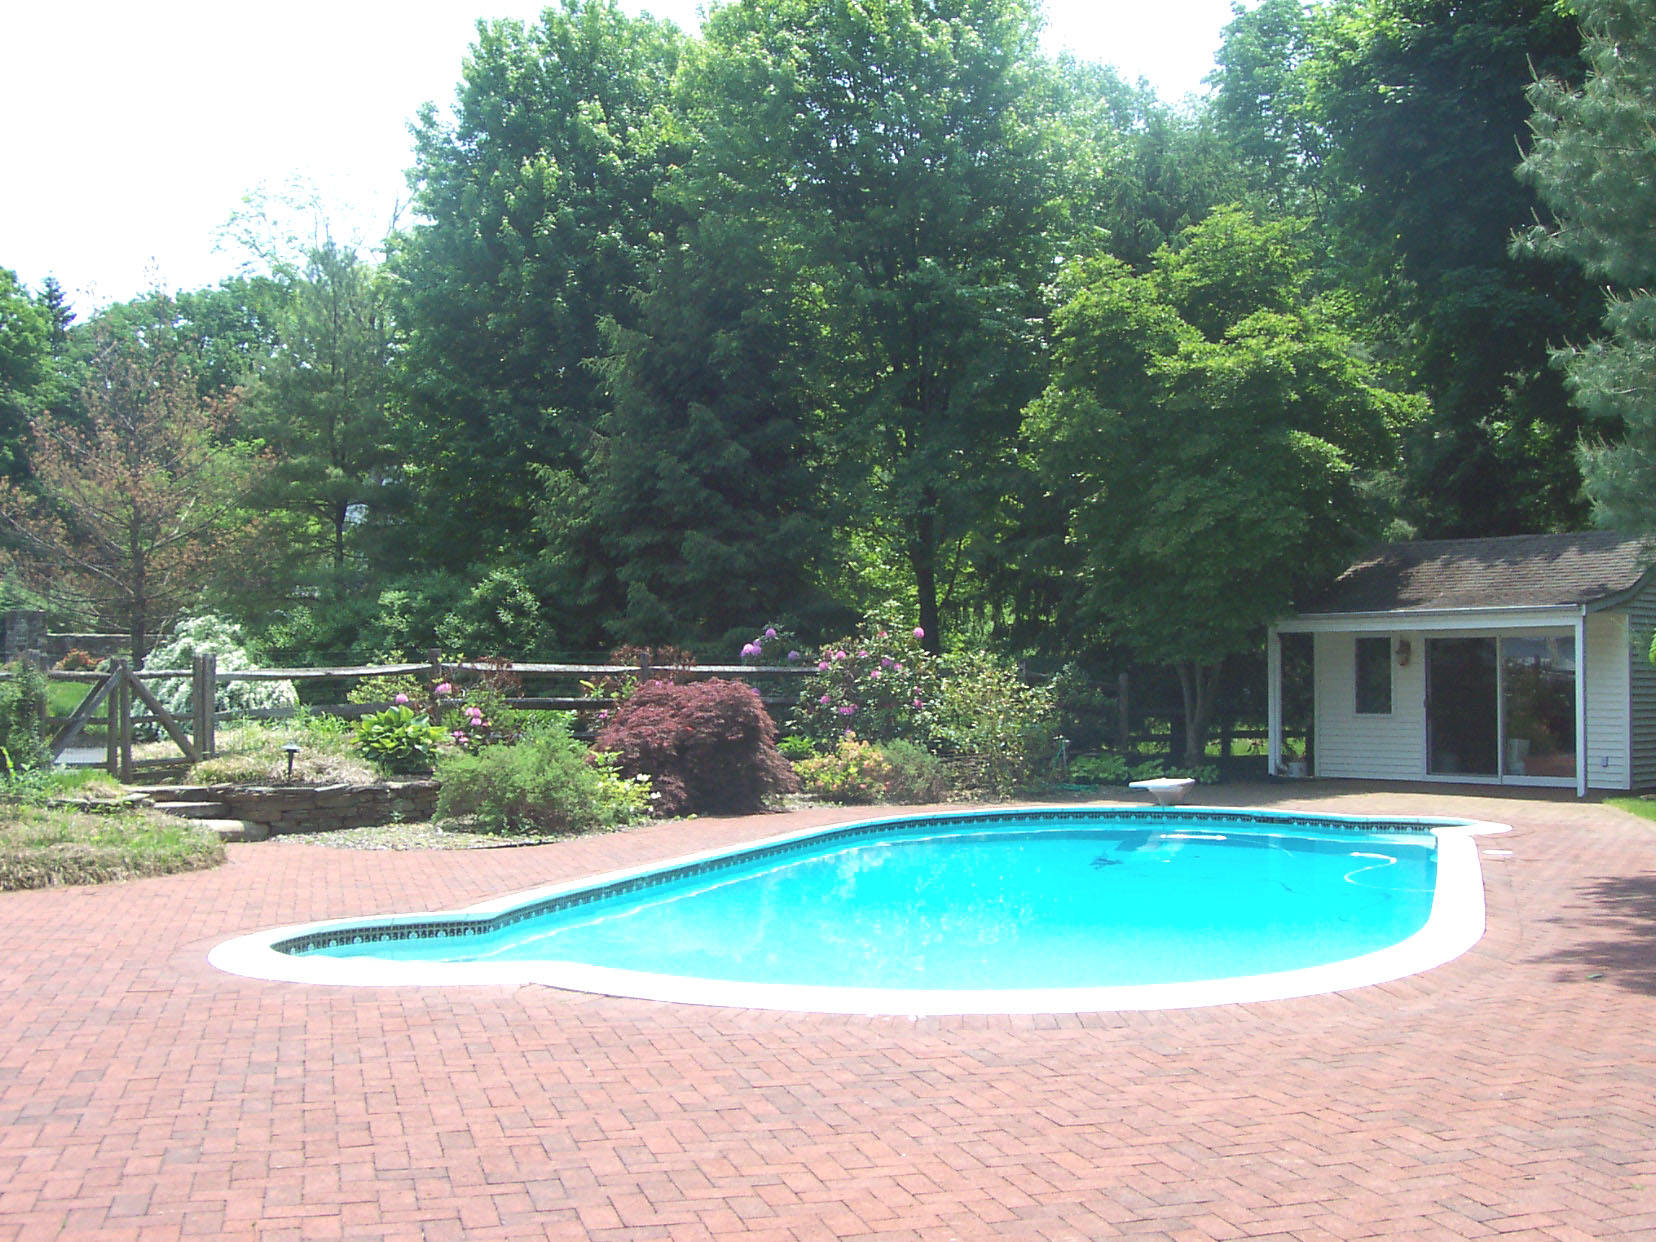 File:Private Swimming Pool